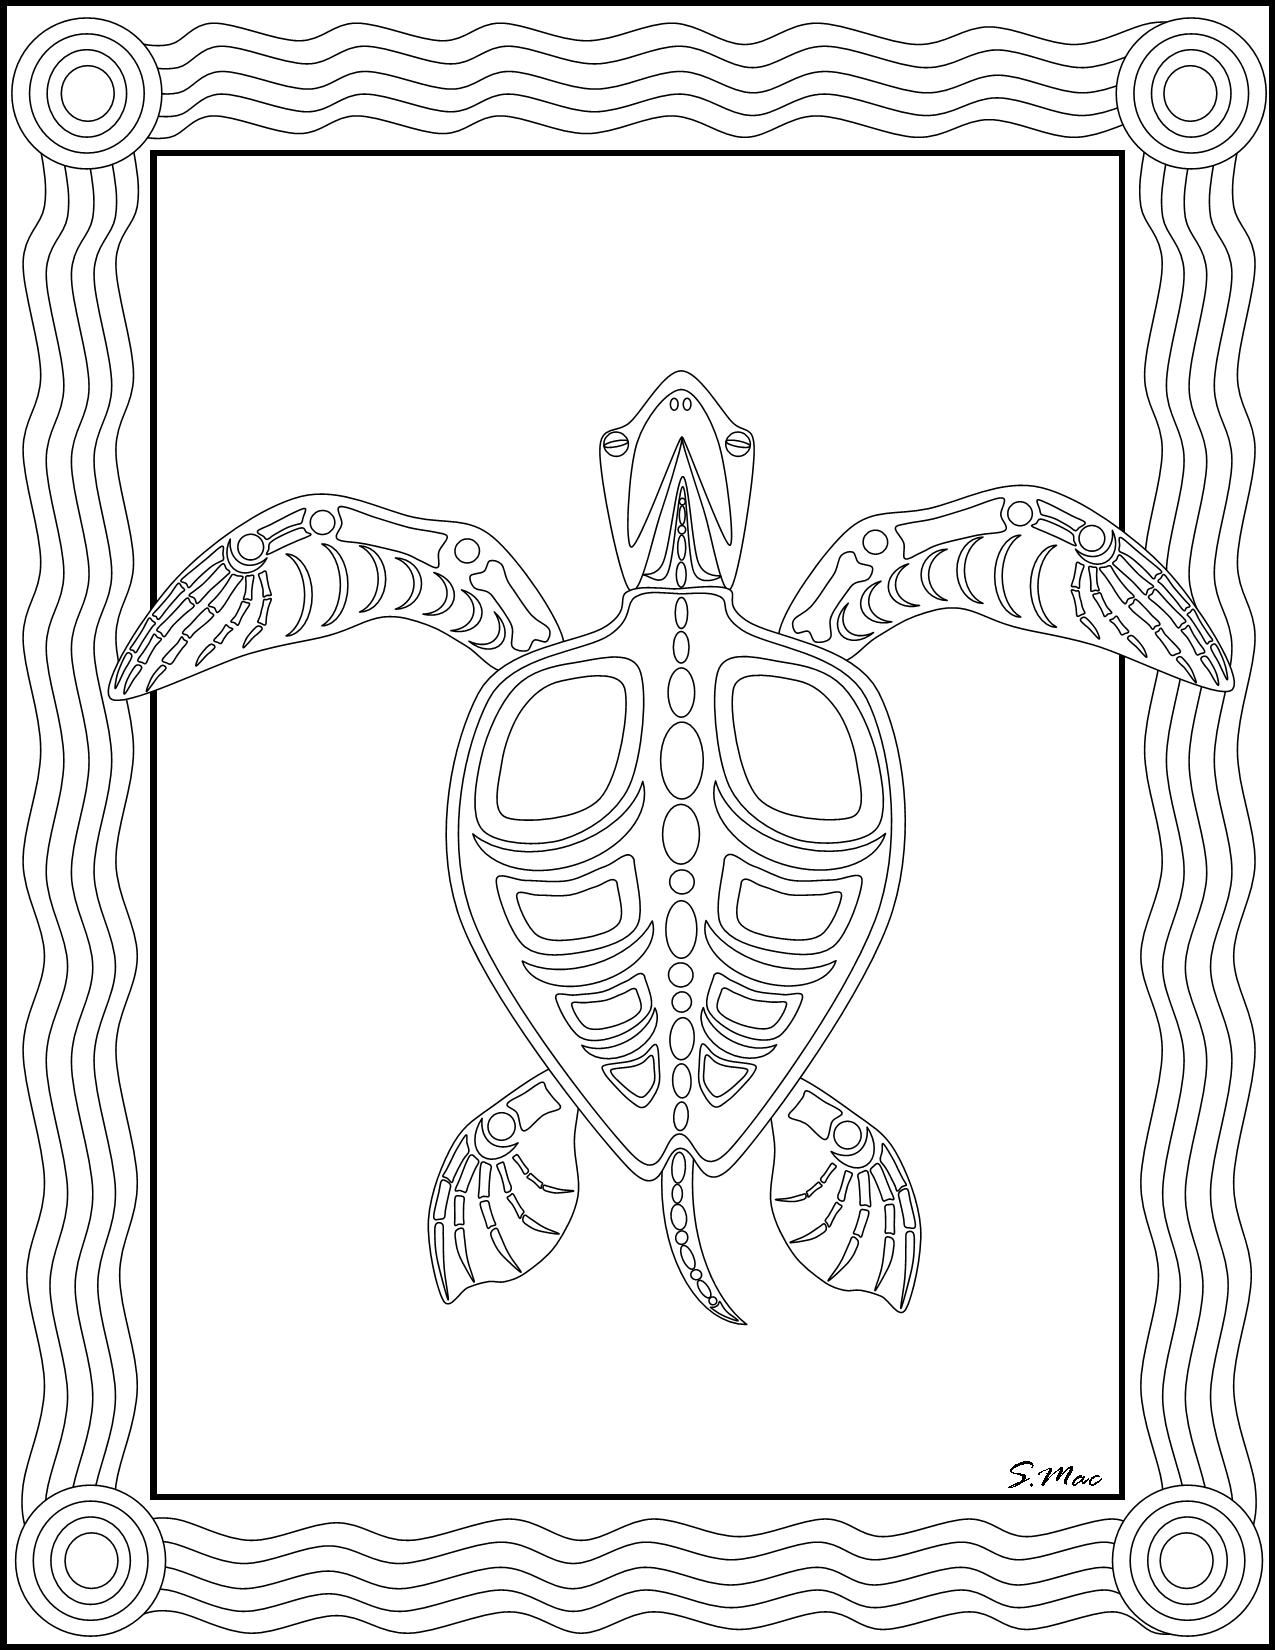 X ray coloring pages - Free Coloring Pages X Ray Free Coloring Pages Of Aboriginal Dot Animals Free Coloring Download